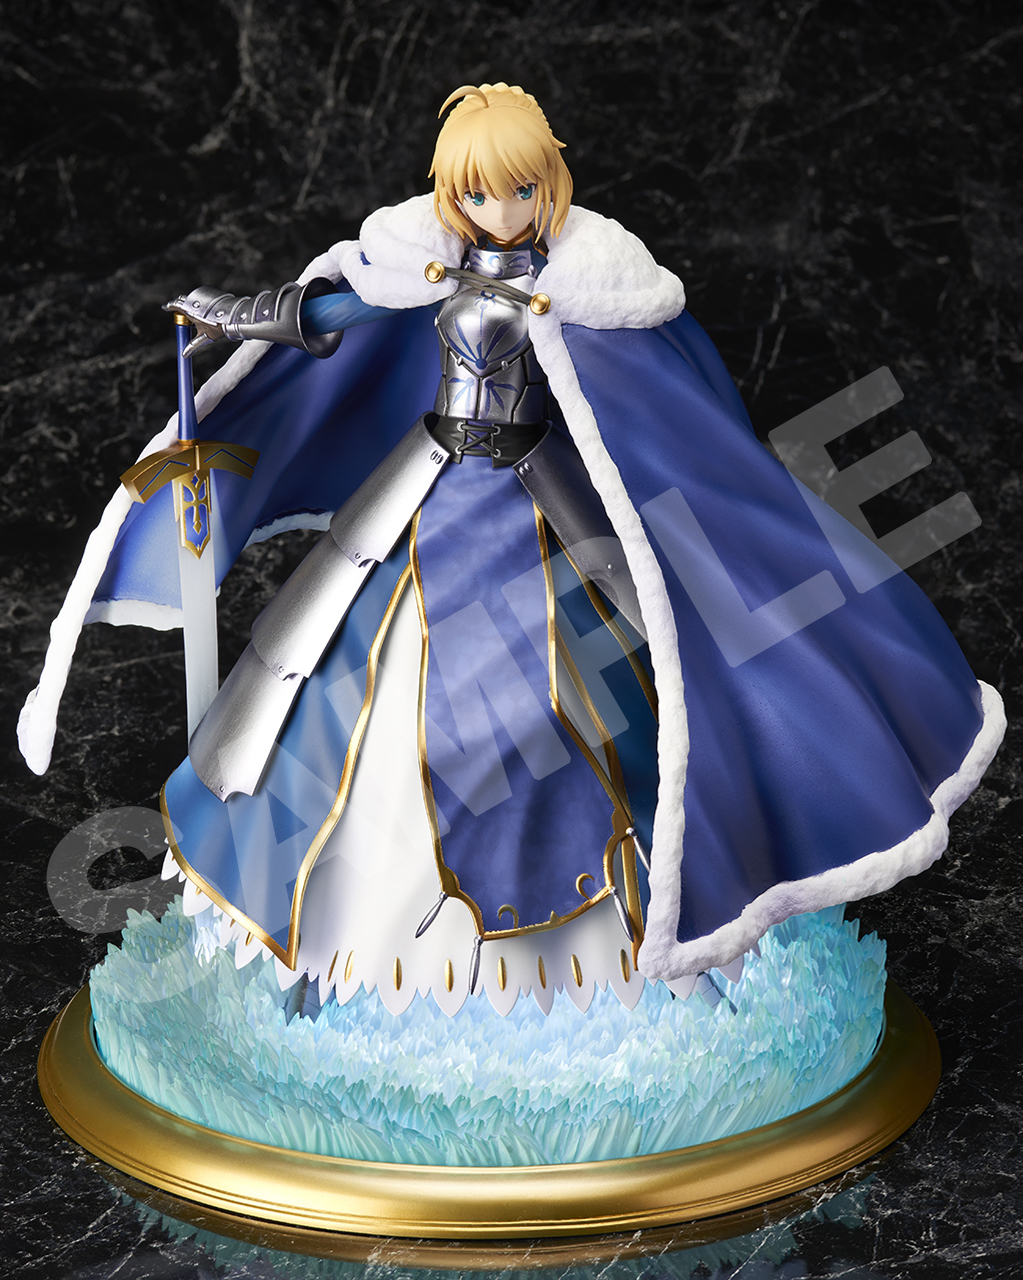 Saber Deluxe Edition Fate/Grand Order Figure